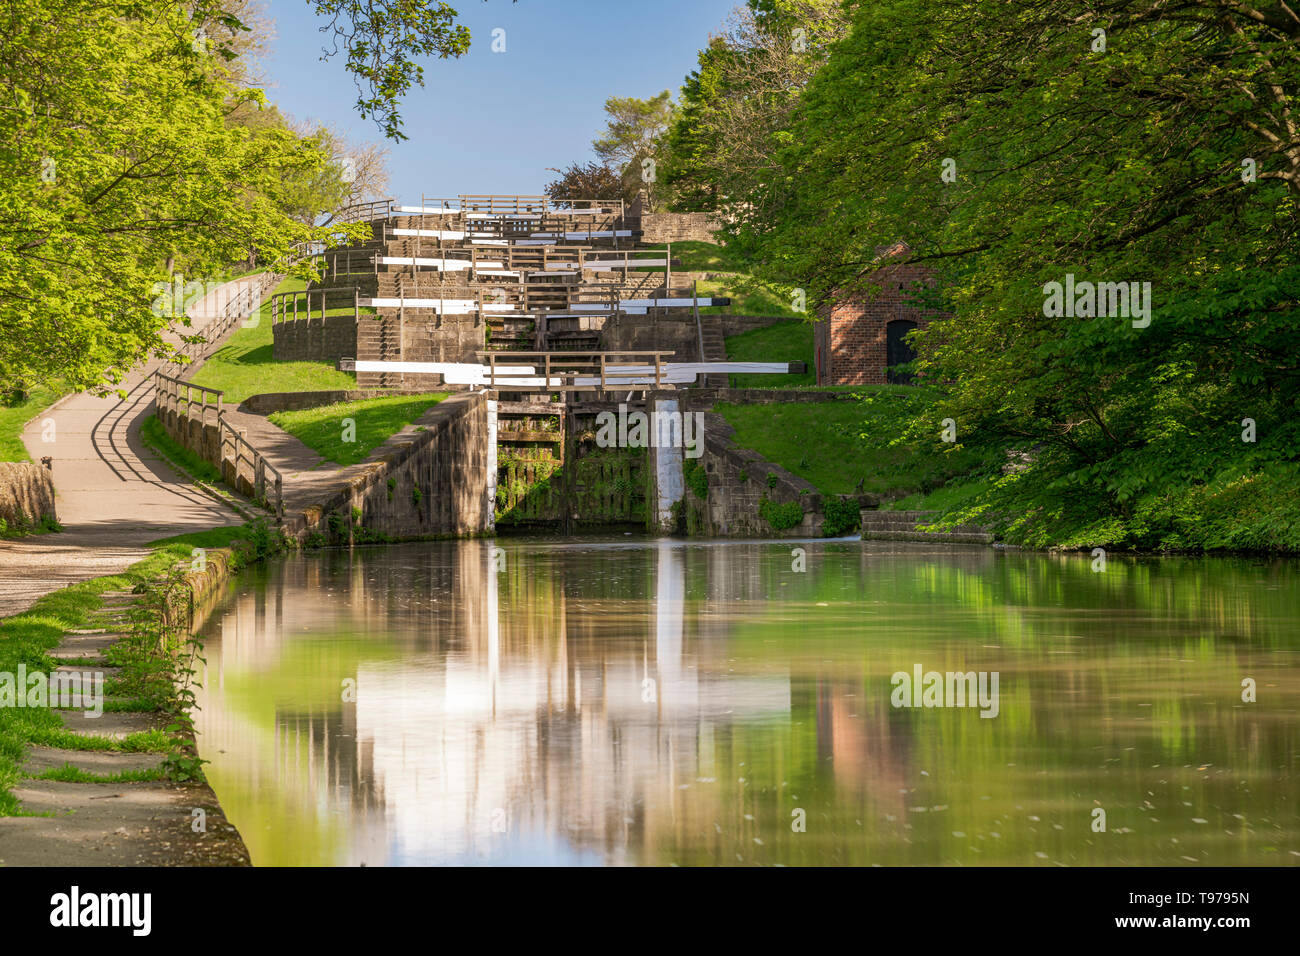 stairsBingley Five Rise Locks on the Leeds and Liverpool canal raise the waterway 60 feet. They were built in 1774. - Stock Image